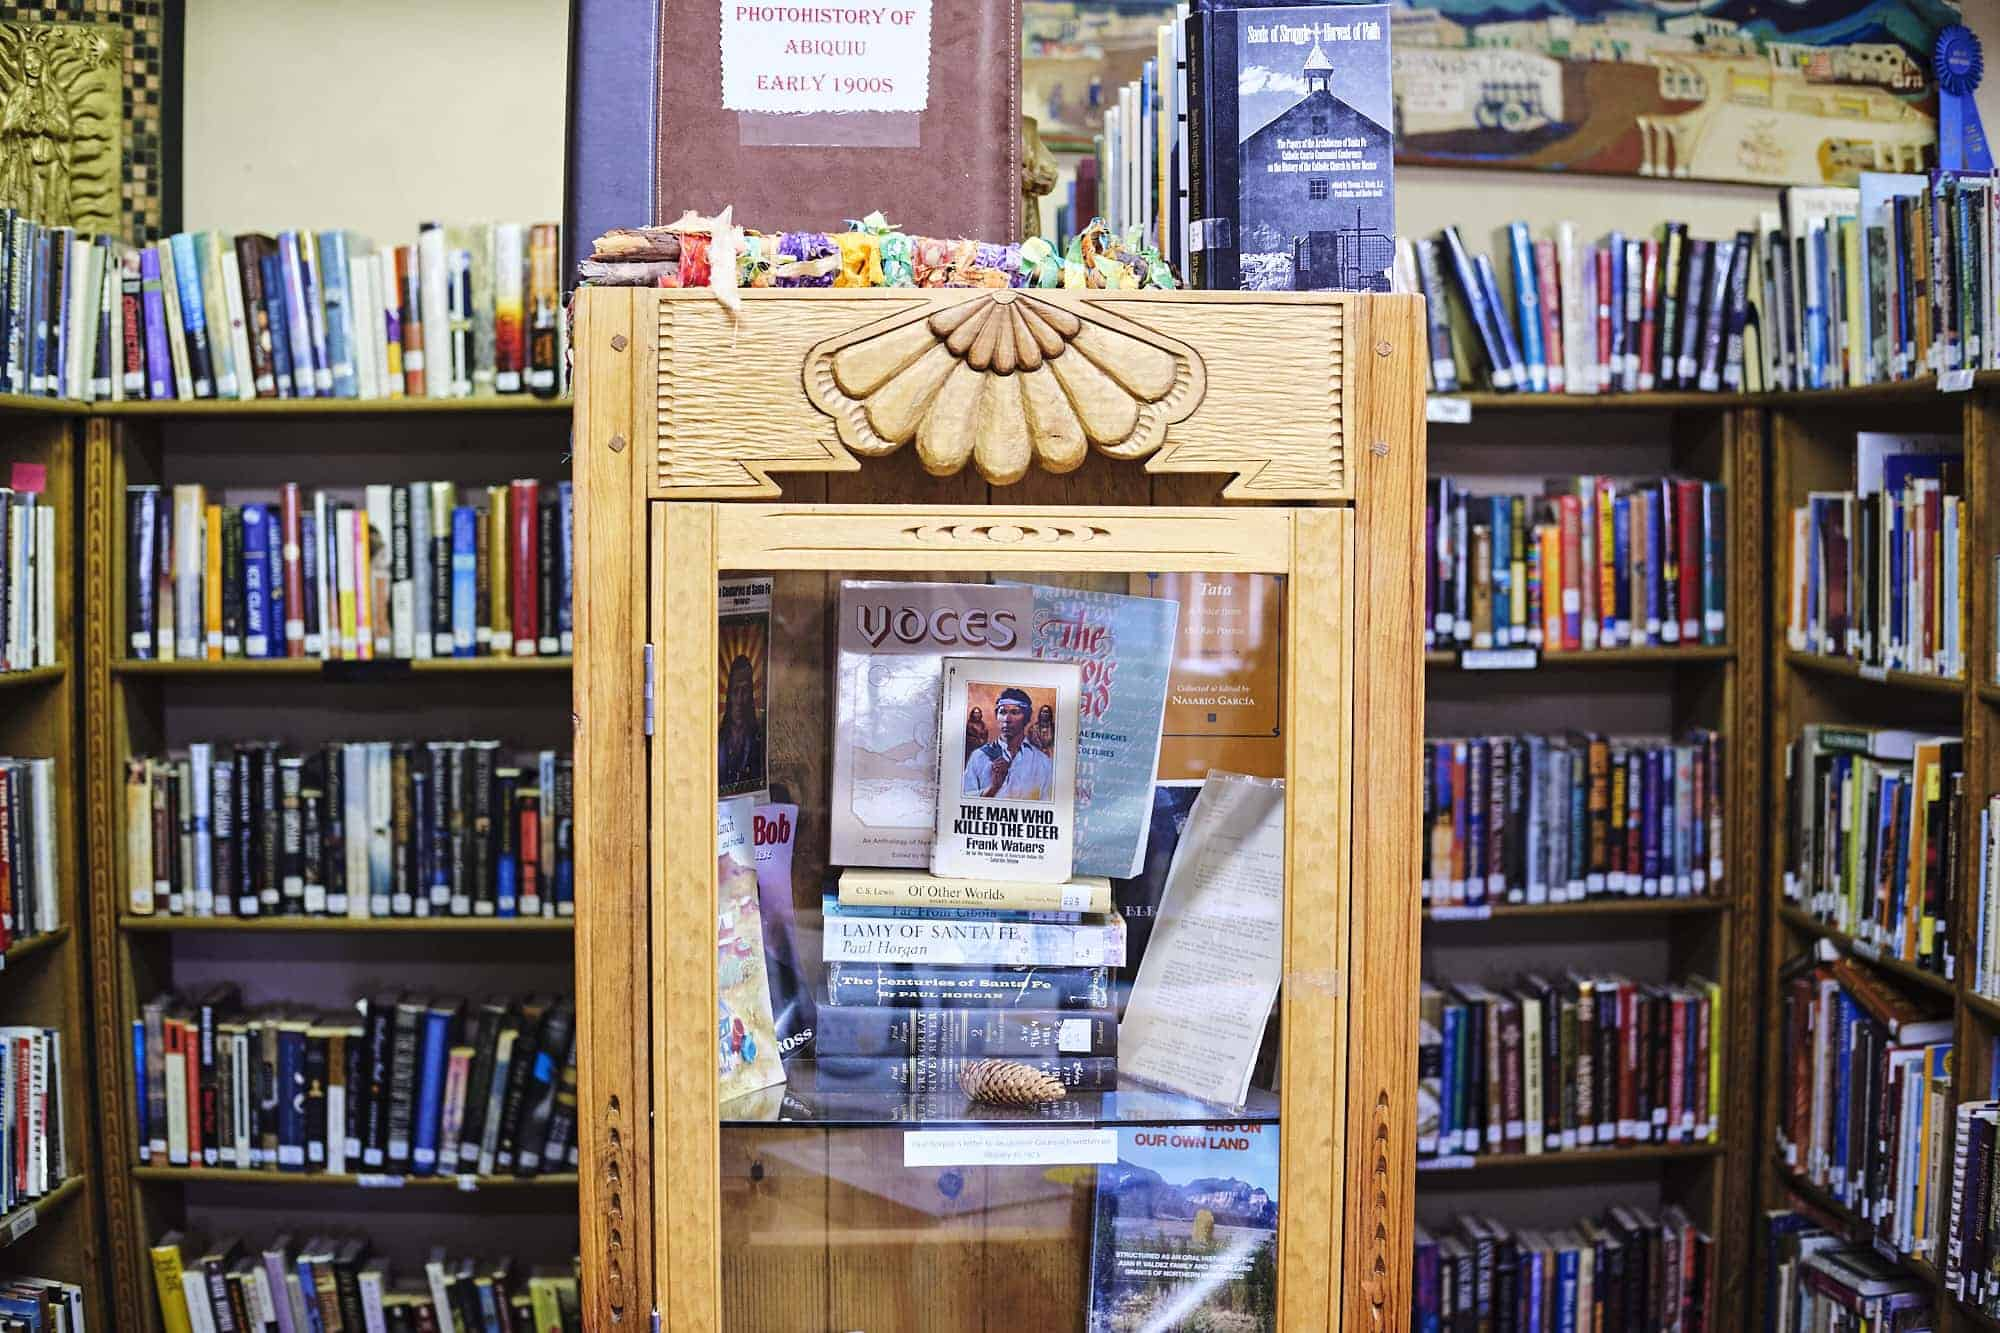 The Pueblo de Abiquiu Library & Cultural Center. (Photo by Shawn Poynter)